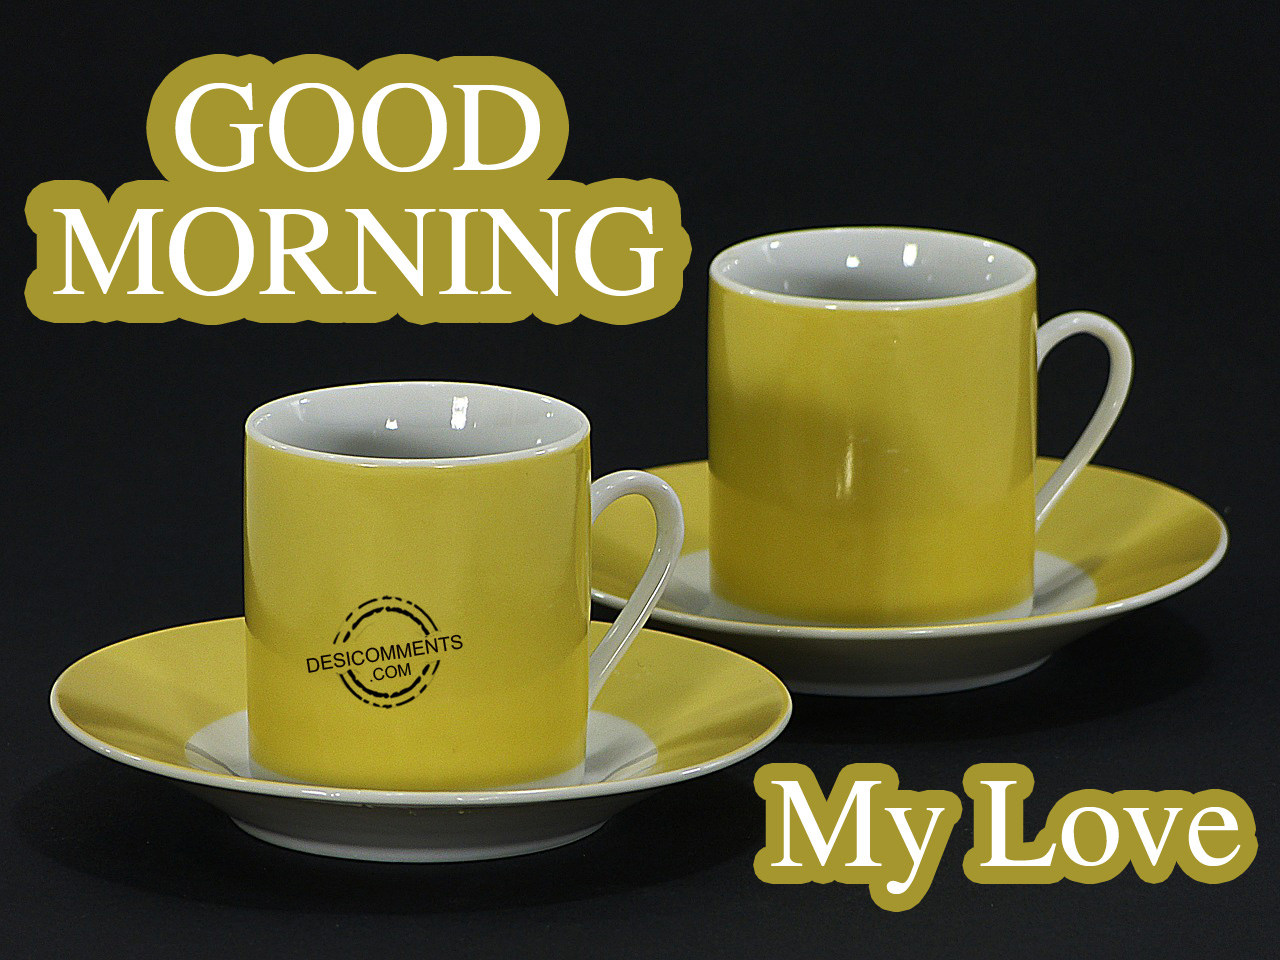 Good Morning My Love Comments : Good morning pictures images graphics for facebook